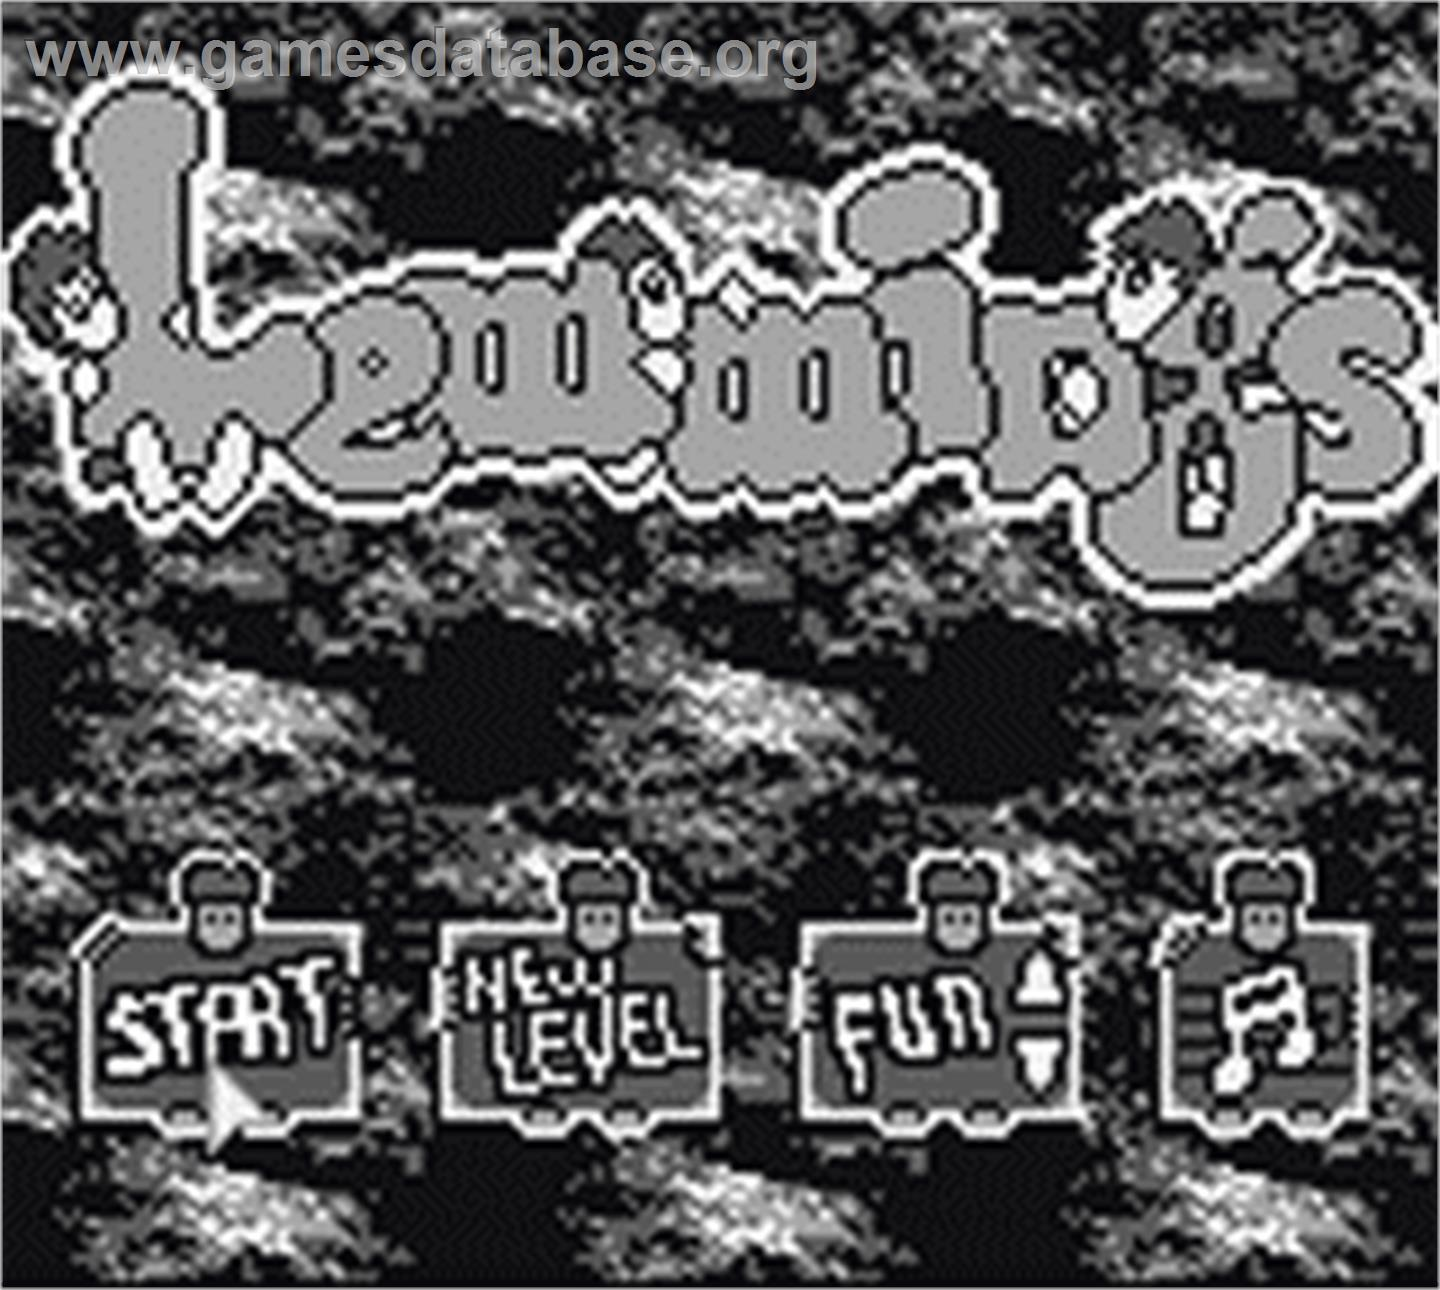 Lemmings - Nintendo Game Boy - Artwork - Title Screen